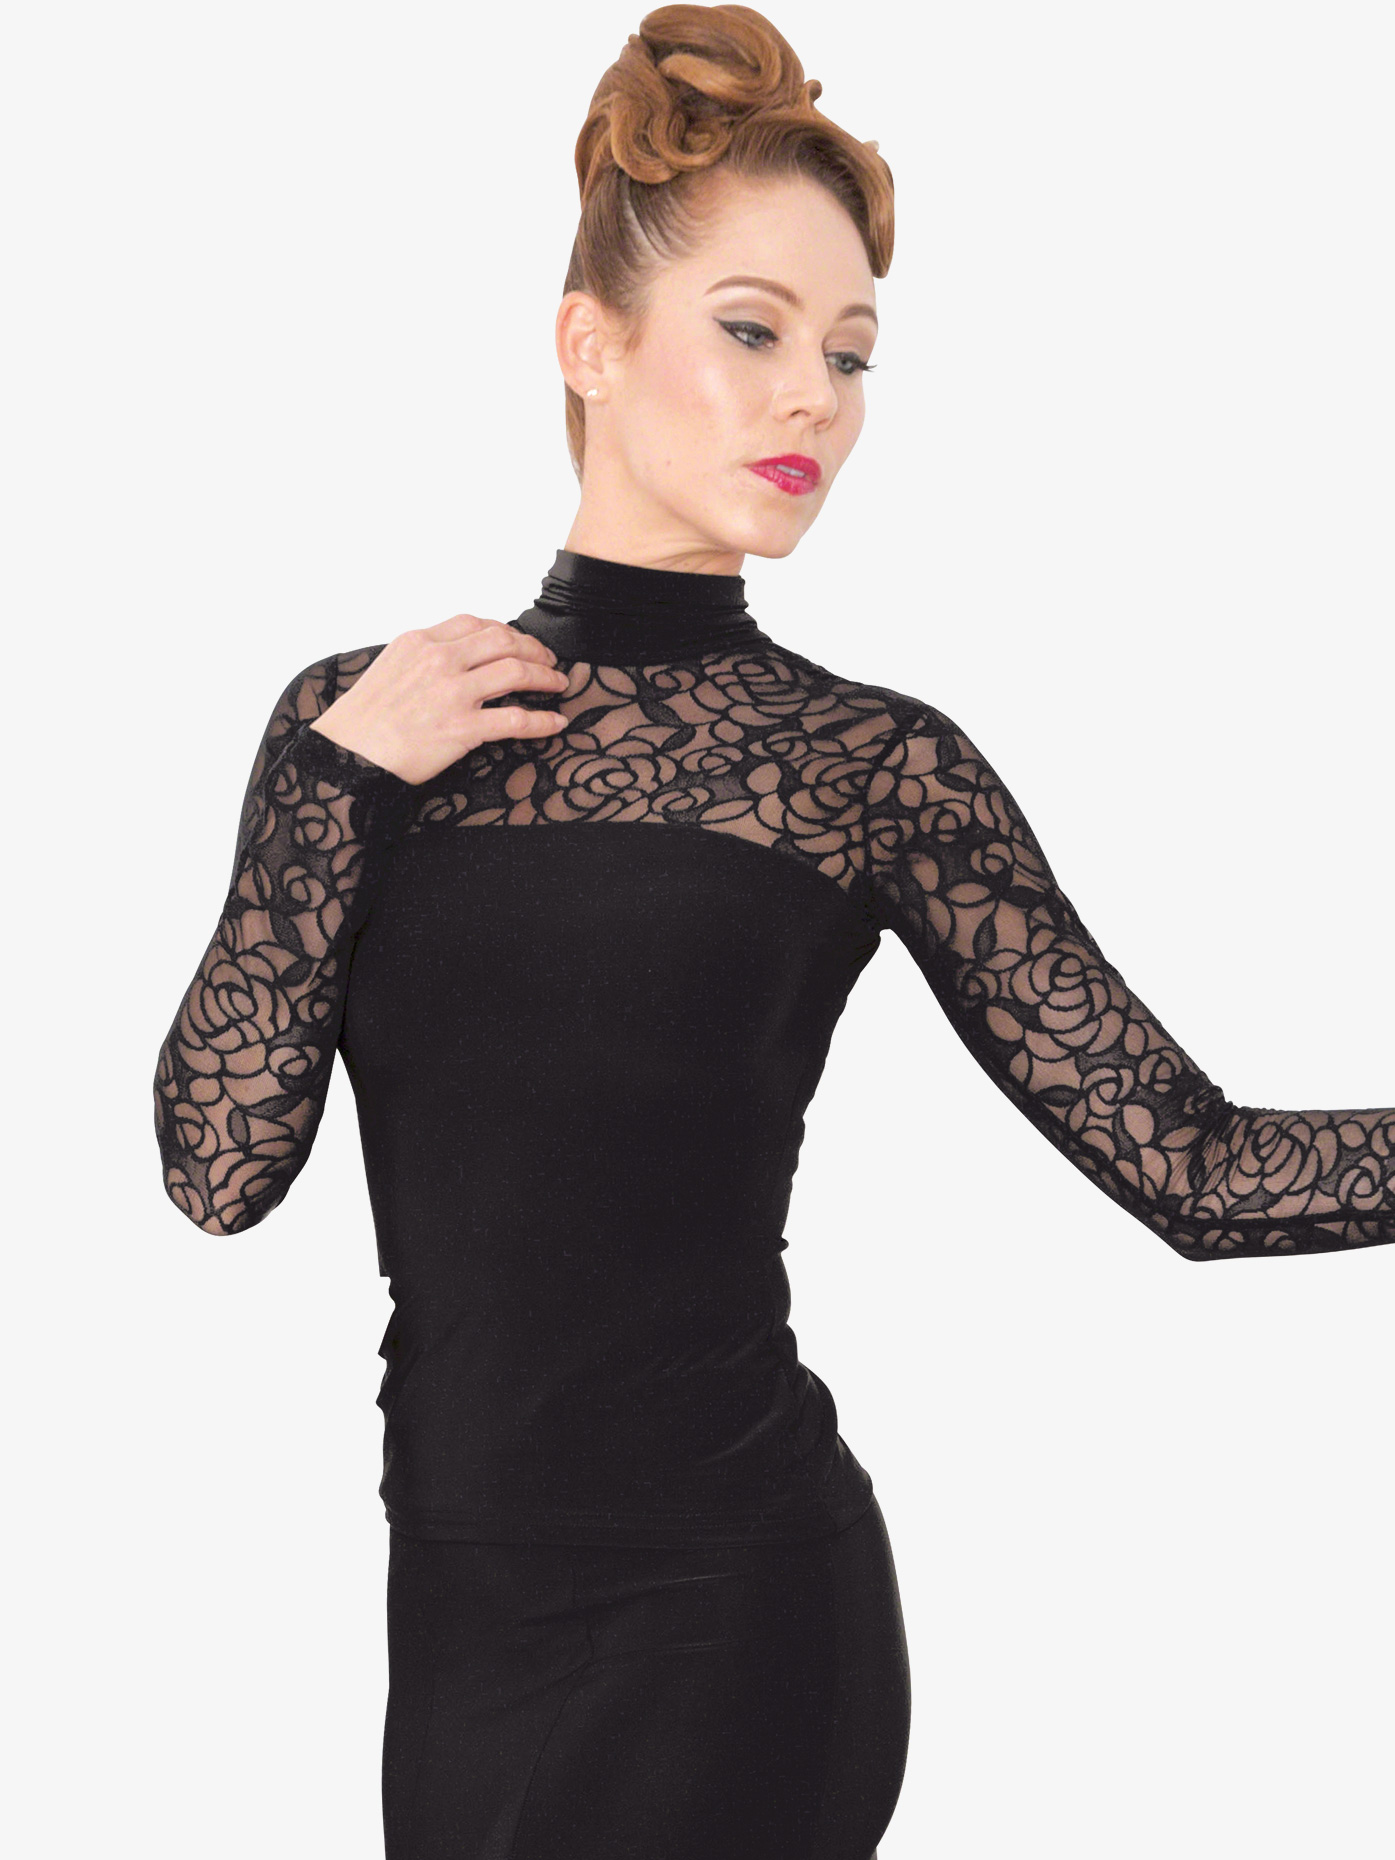 Dance America Womens Lace Long Sleeve Ballroom Dance Top T808